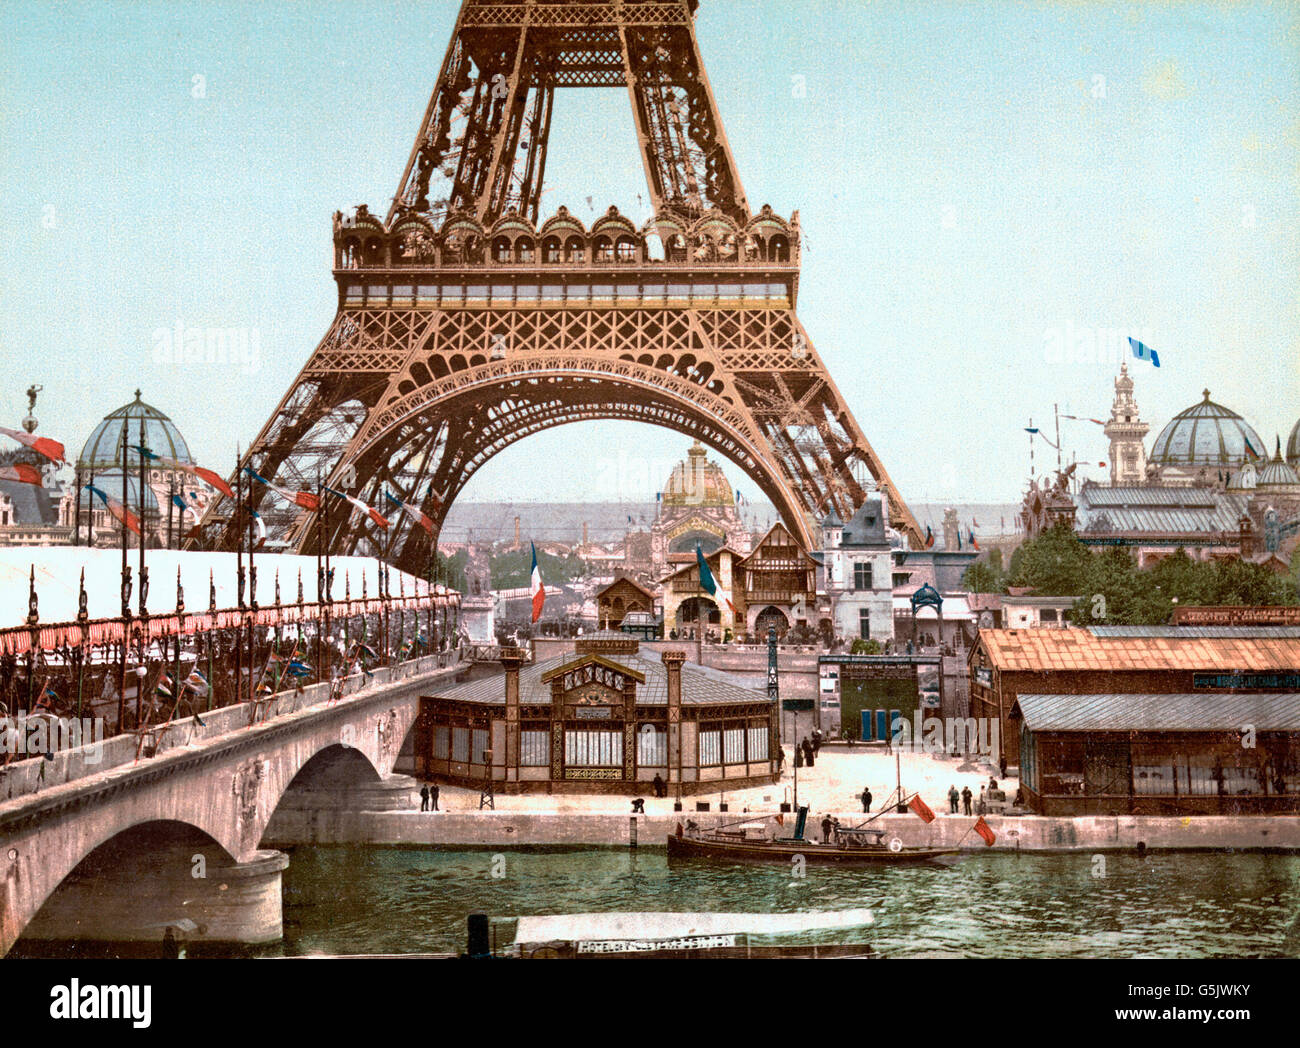 Paris Exposition, 1900. Eiffel Tower and general view of the grounds from the River Seine, Exposition Universelle - Stock Image